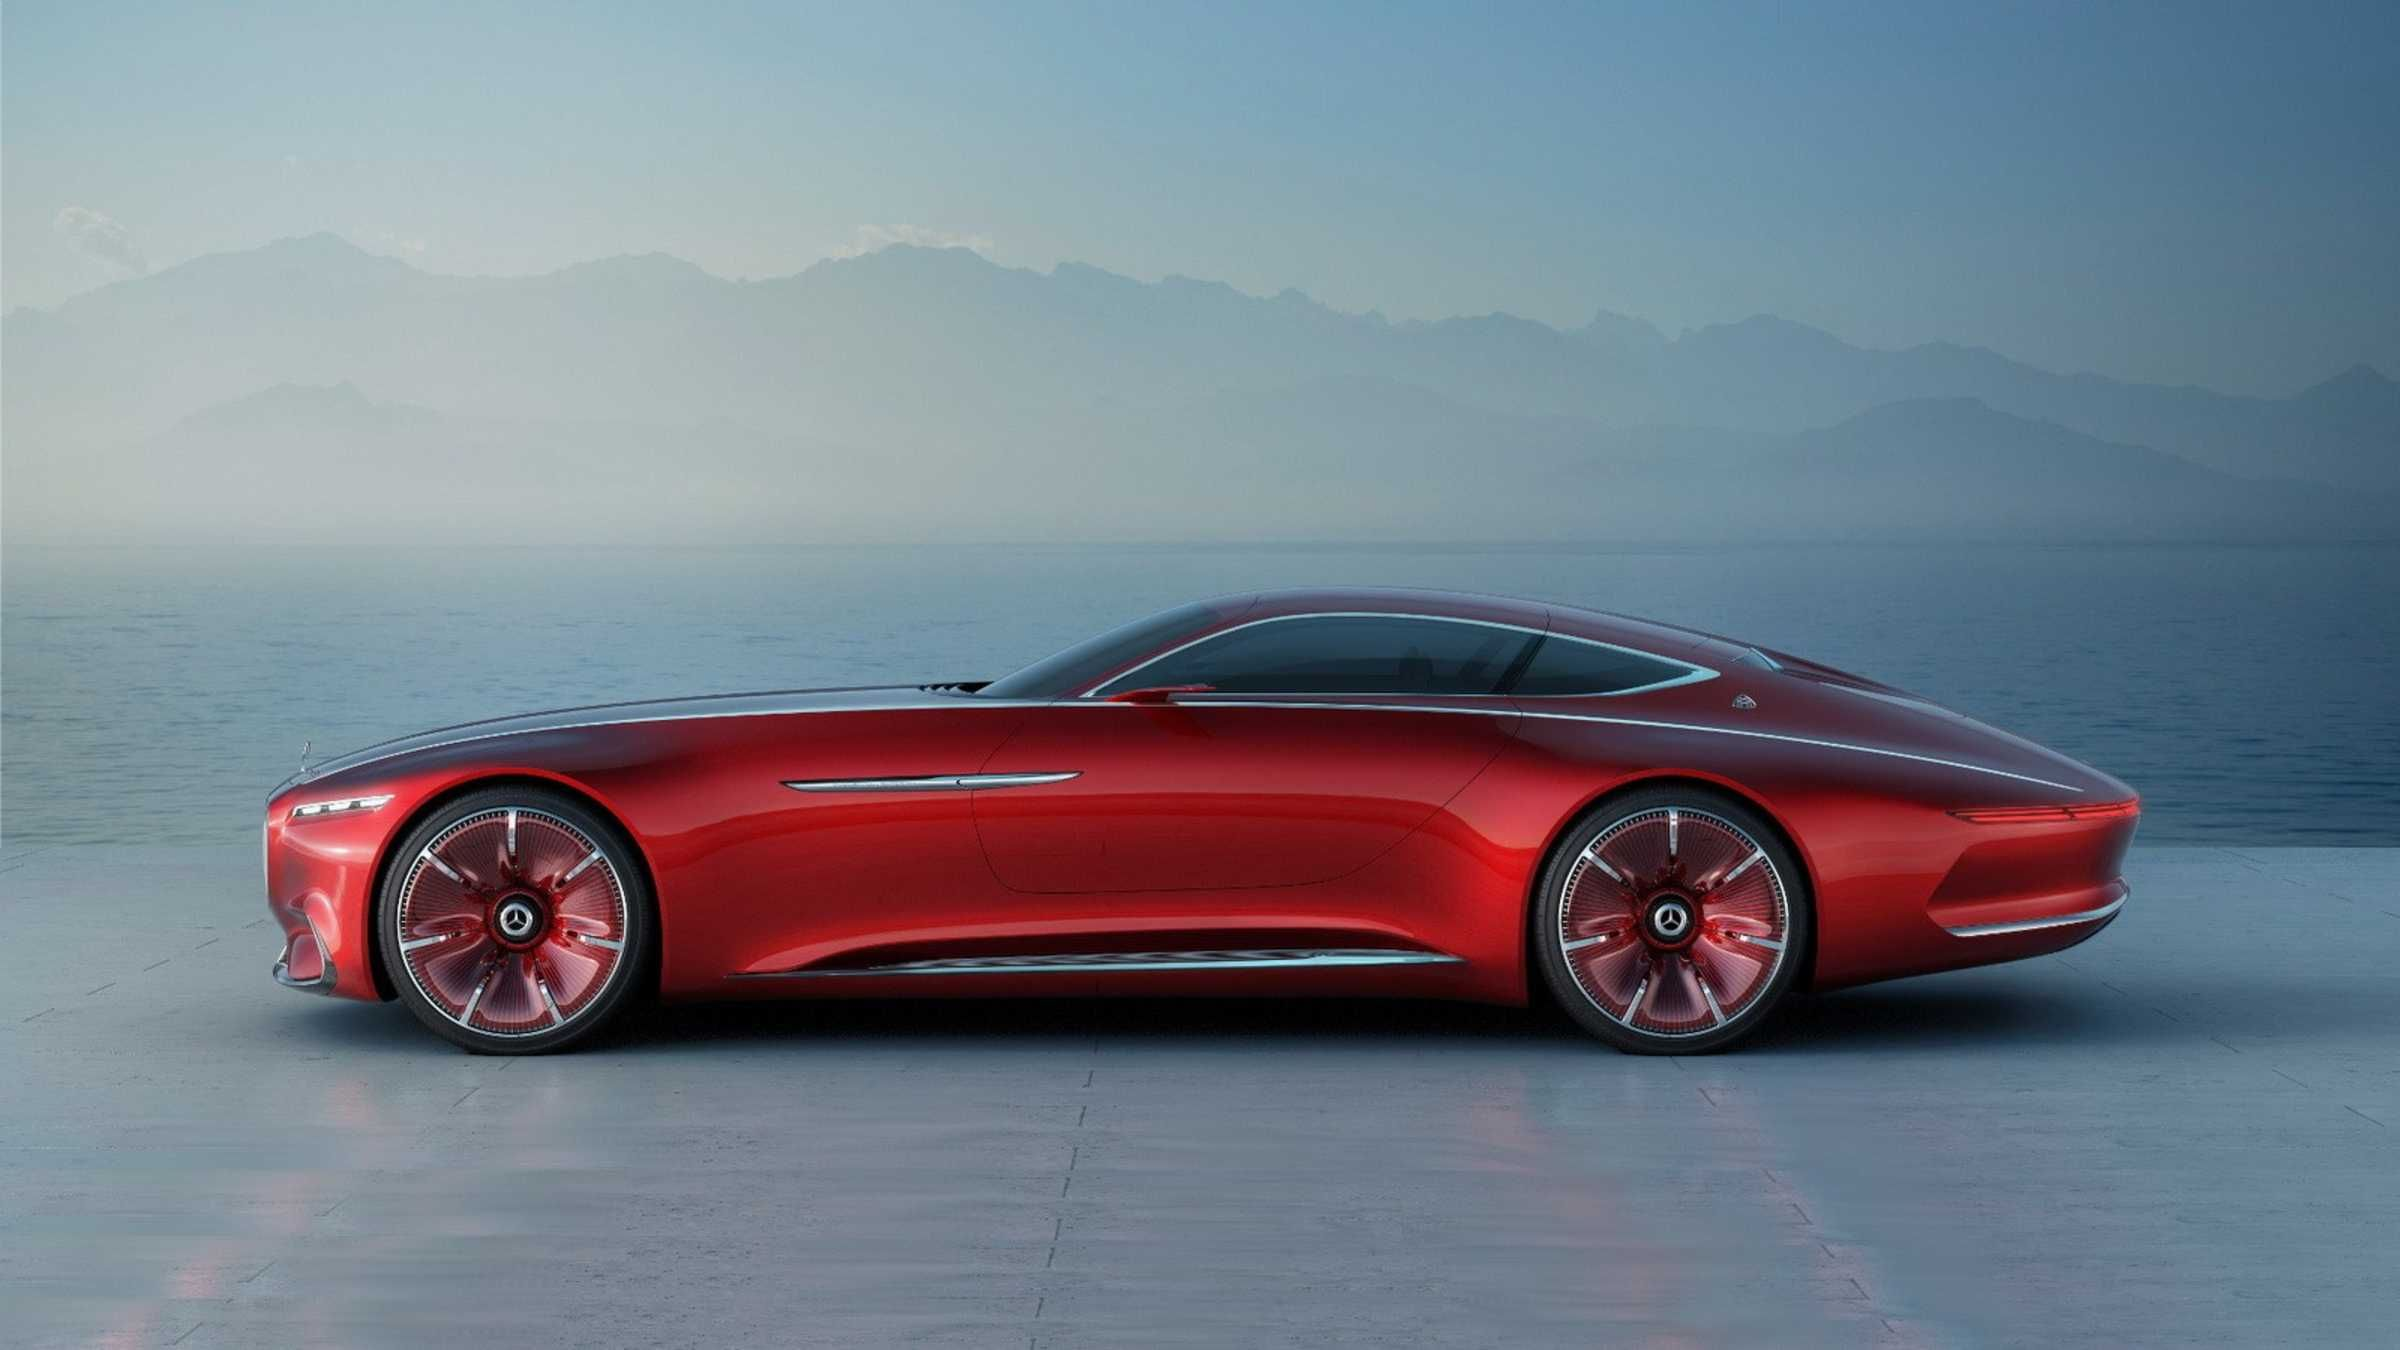 The Vision Mercedes Maybach 6 Concept Is Revealed Ahead Of Pebble